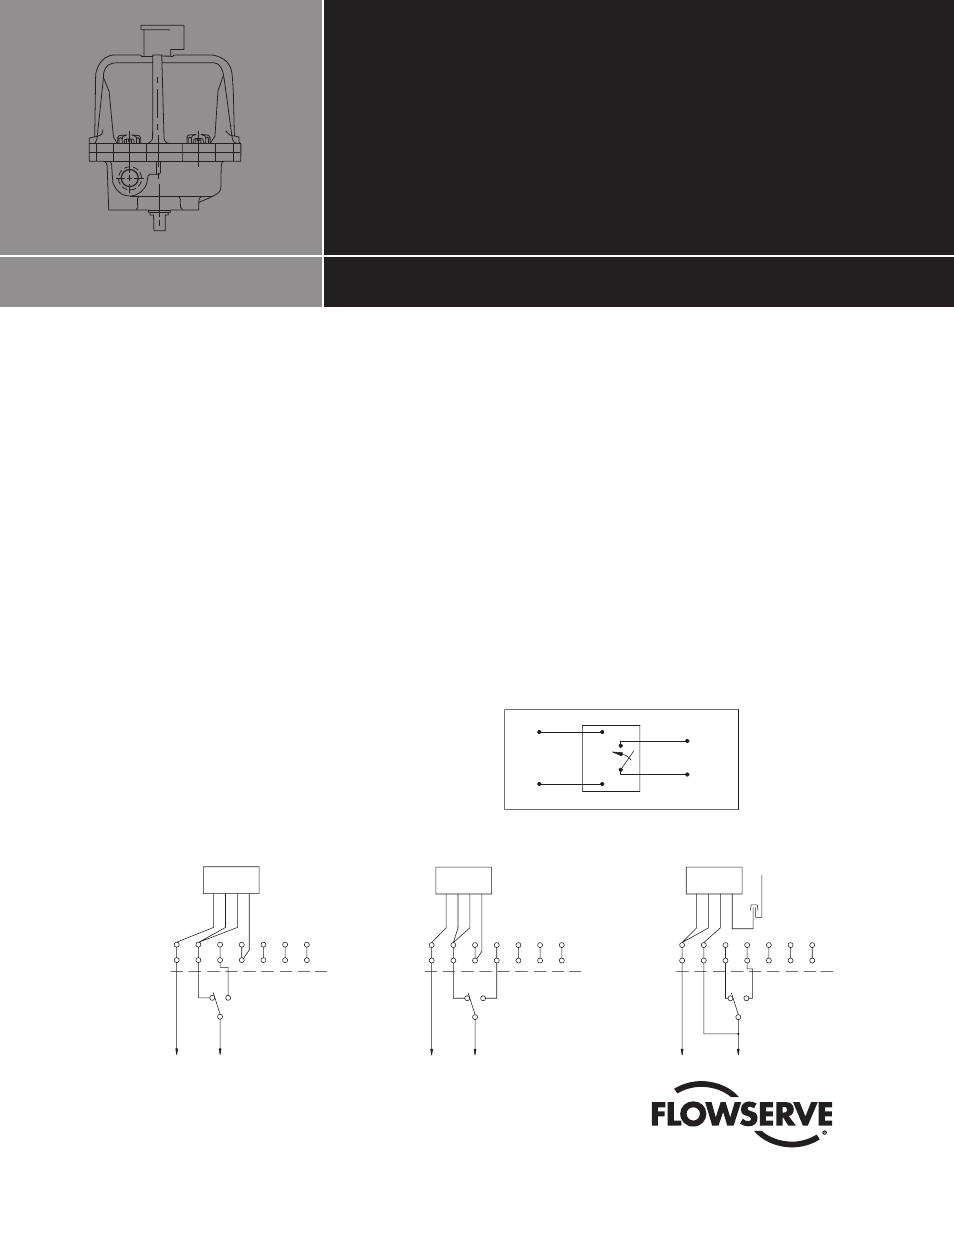 Flowserve Clc Module 10 30 75 Actuator User Manual 2 Pages Wiring Diagram Background Image